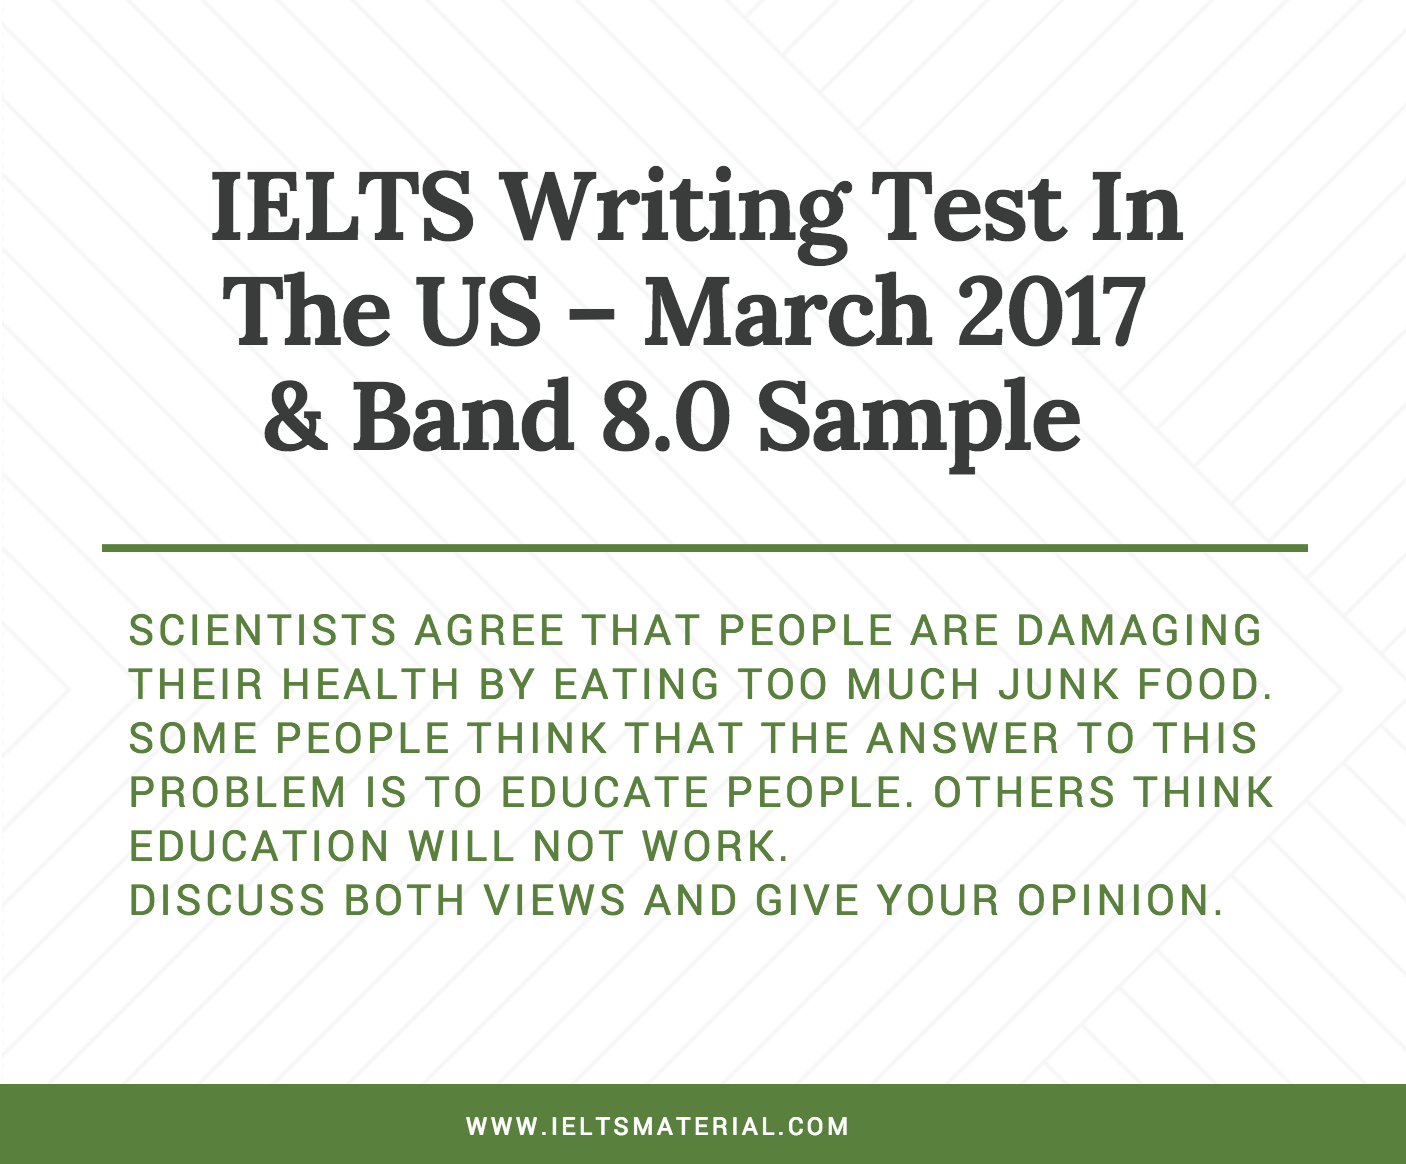 essay typing test Purpose of the test the ielts writing test is designed to assess a wide range of writing skills, including how well you write a response appropriately organise ideas use a range of vocabulary and grammar accurately this is the case for whichever version of the ielts test you are taking.